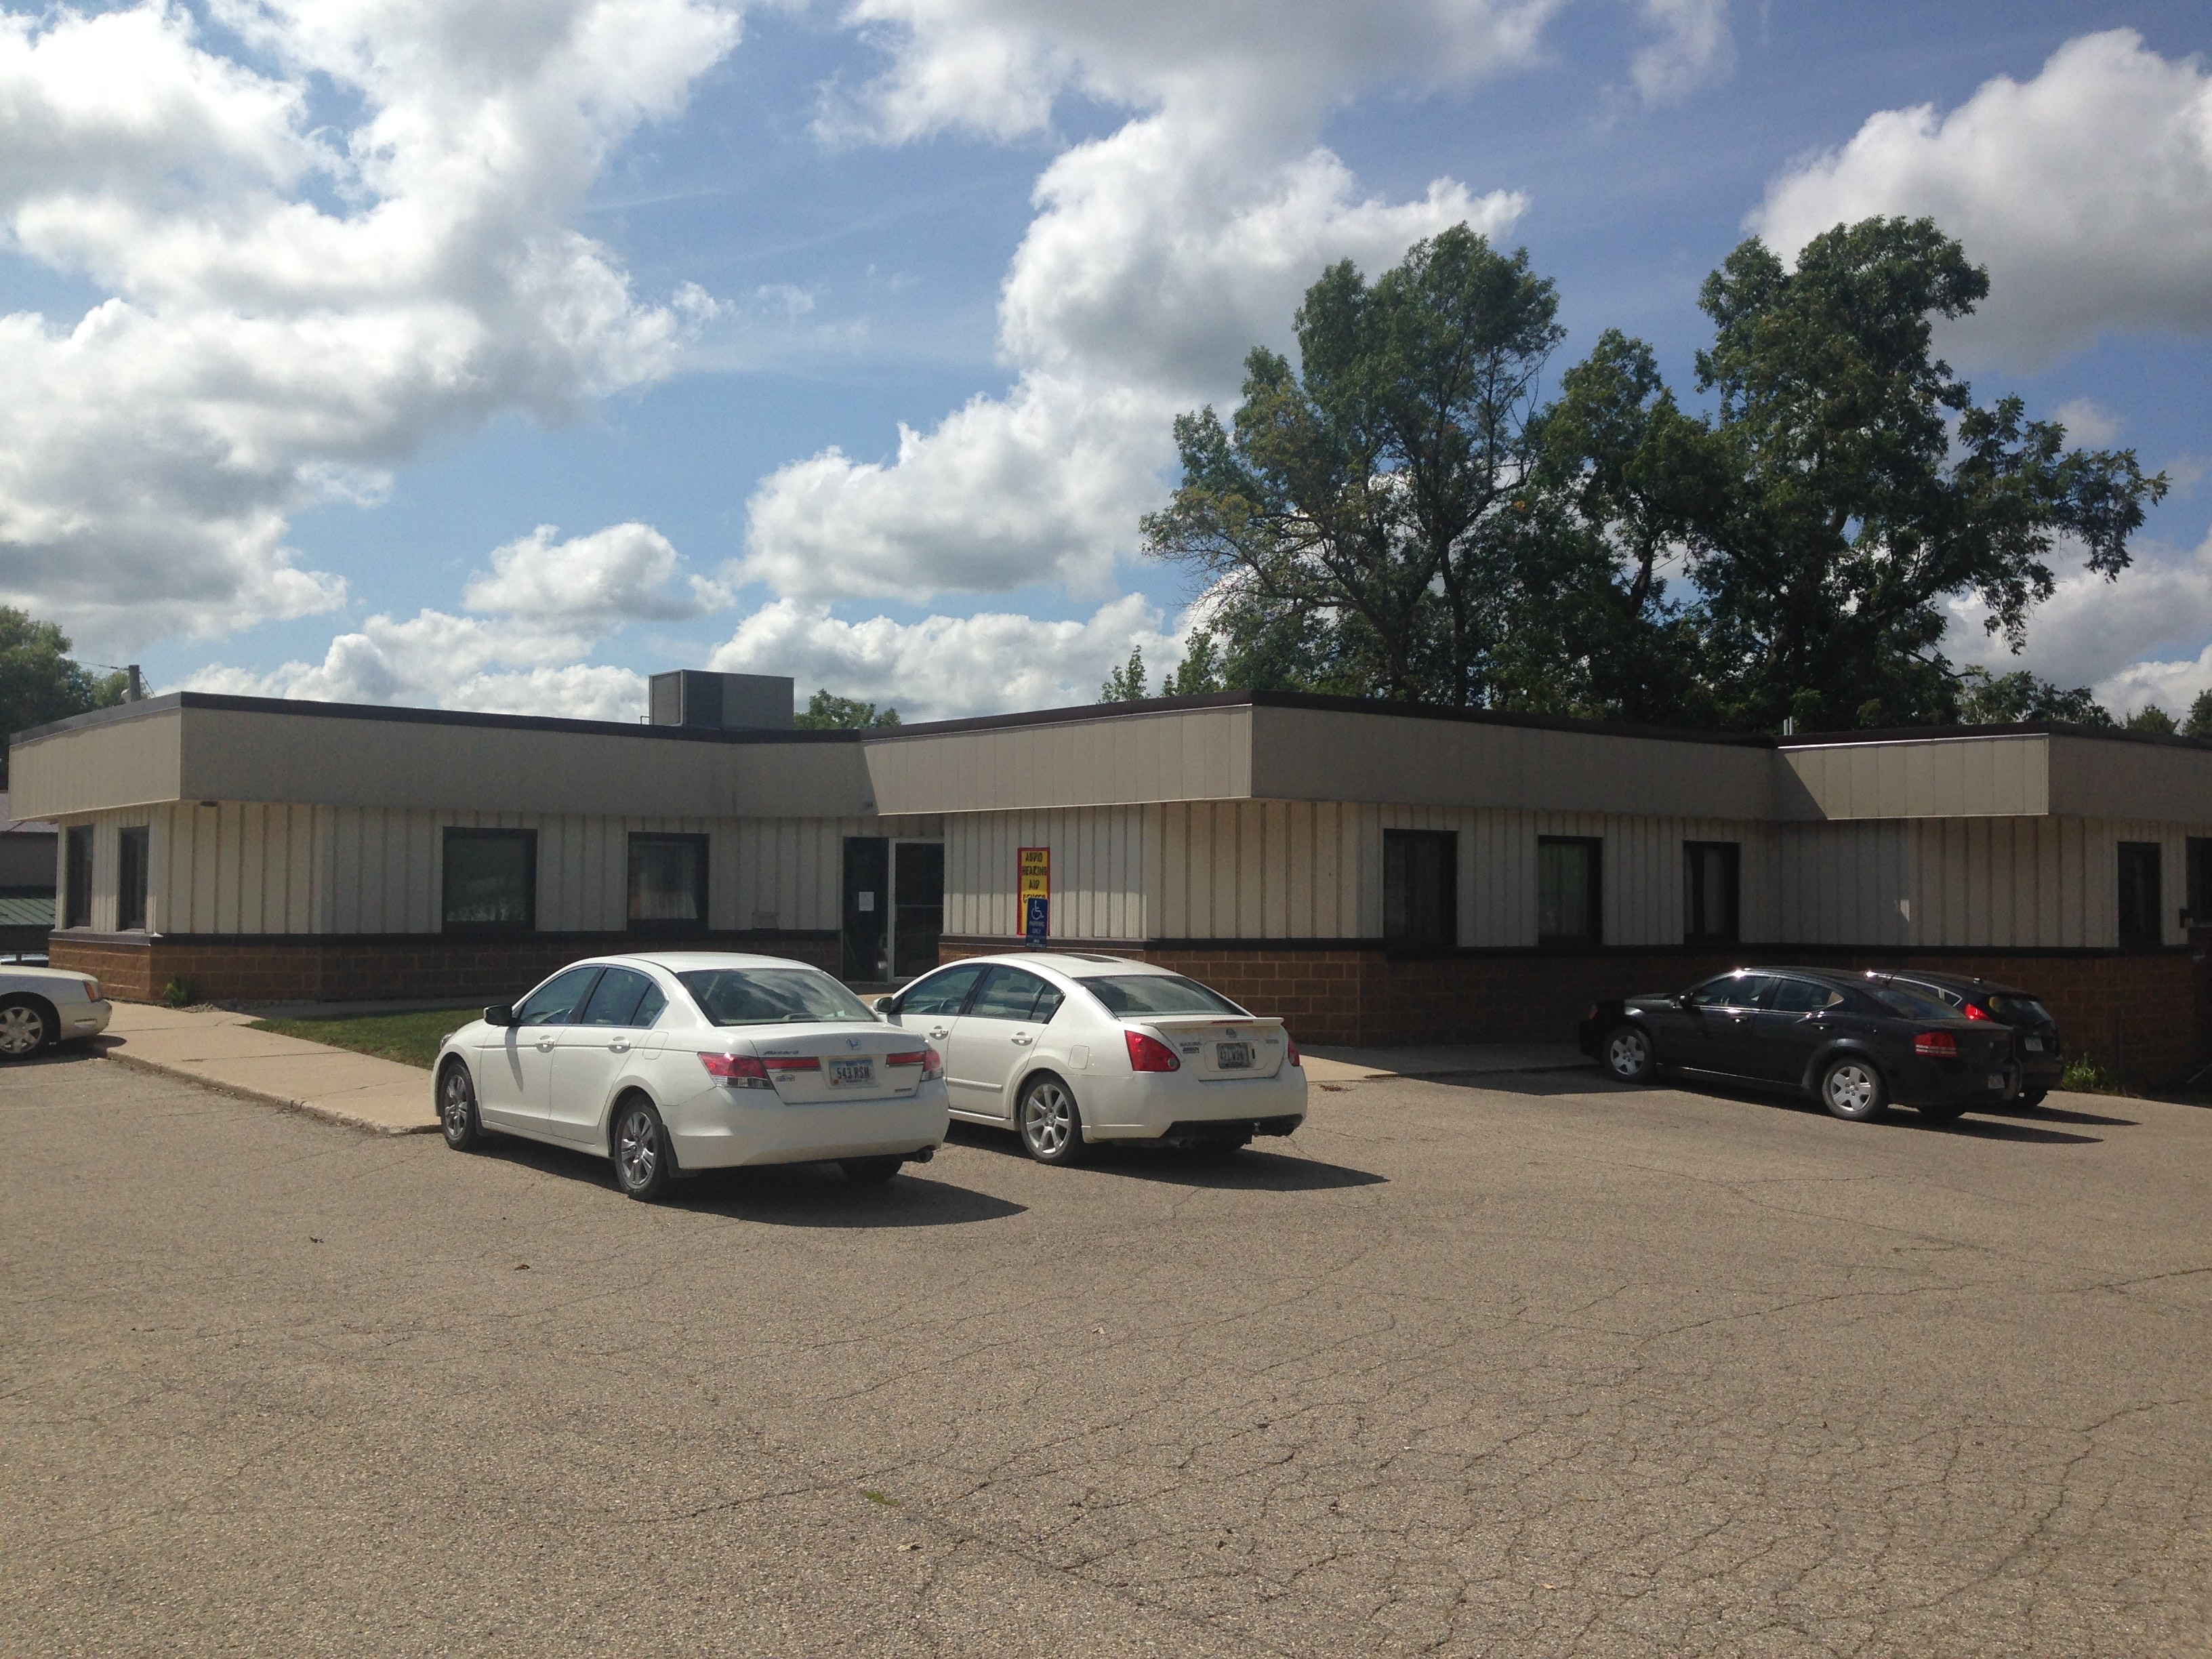 Our new office building!